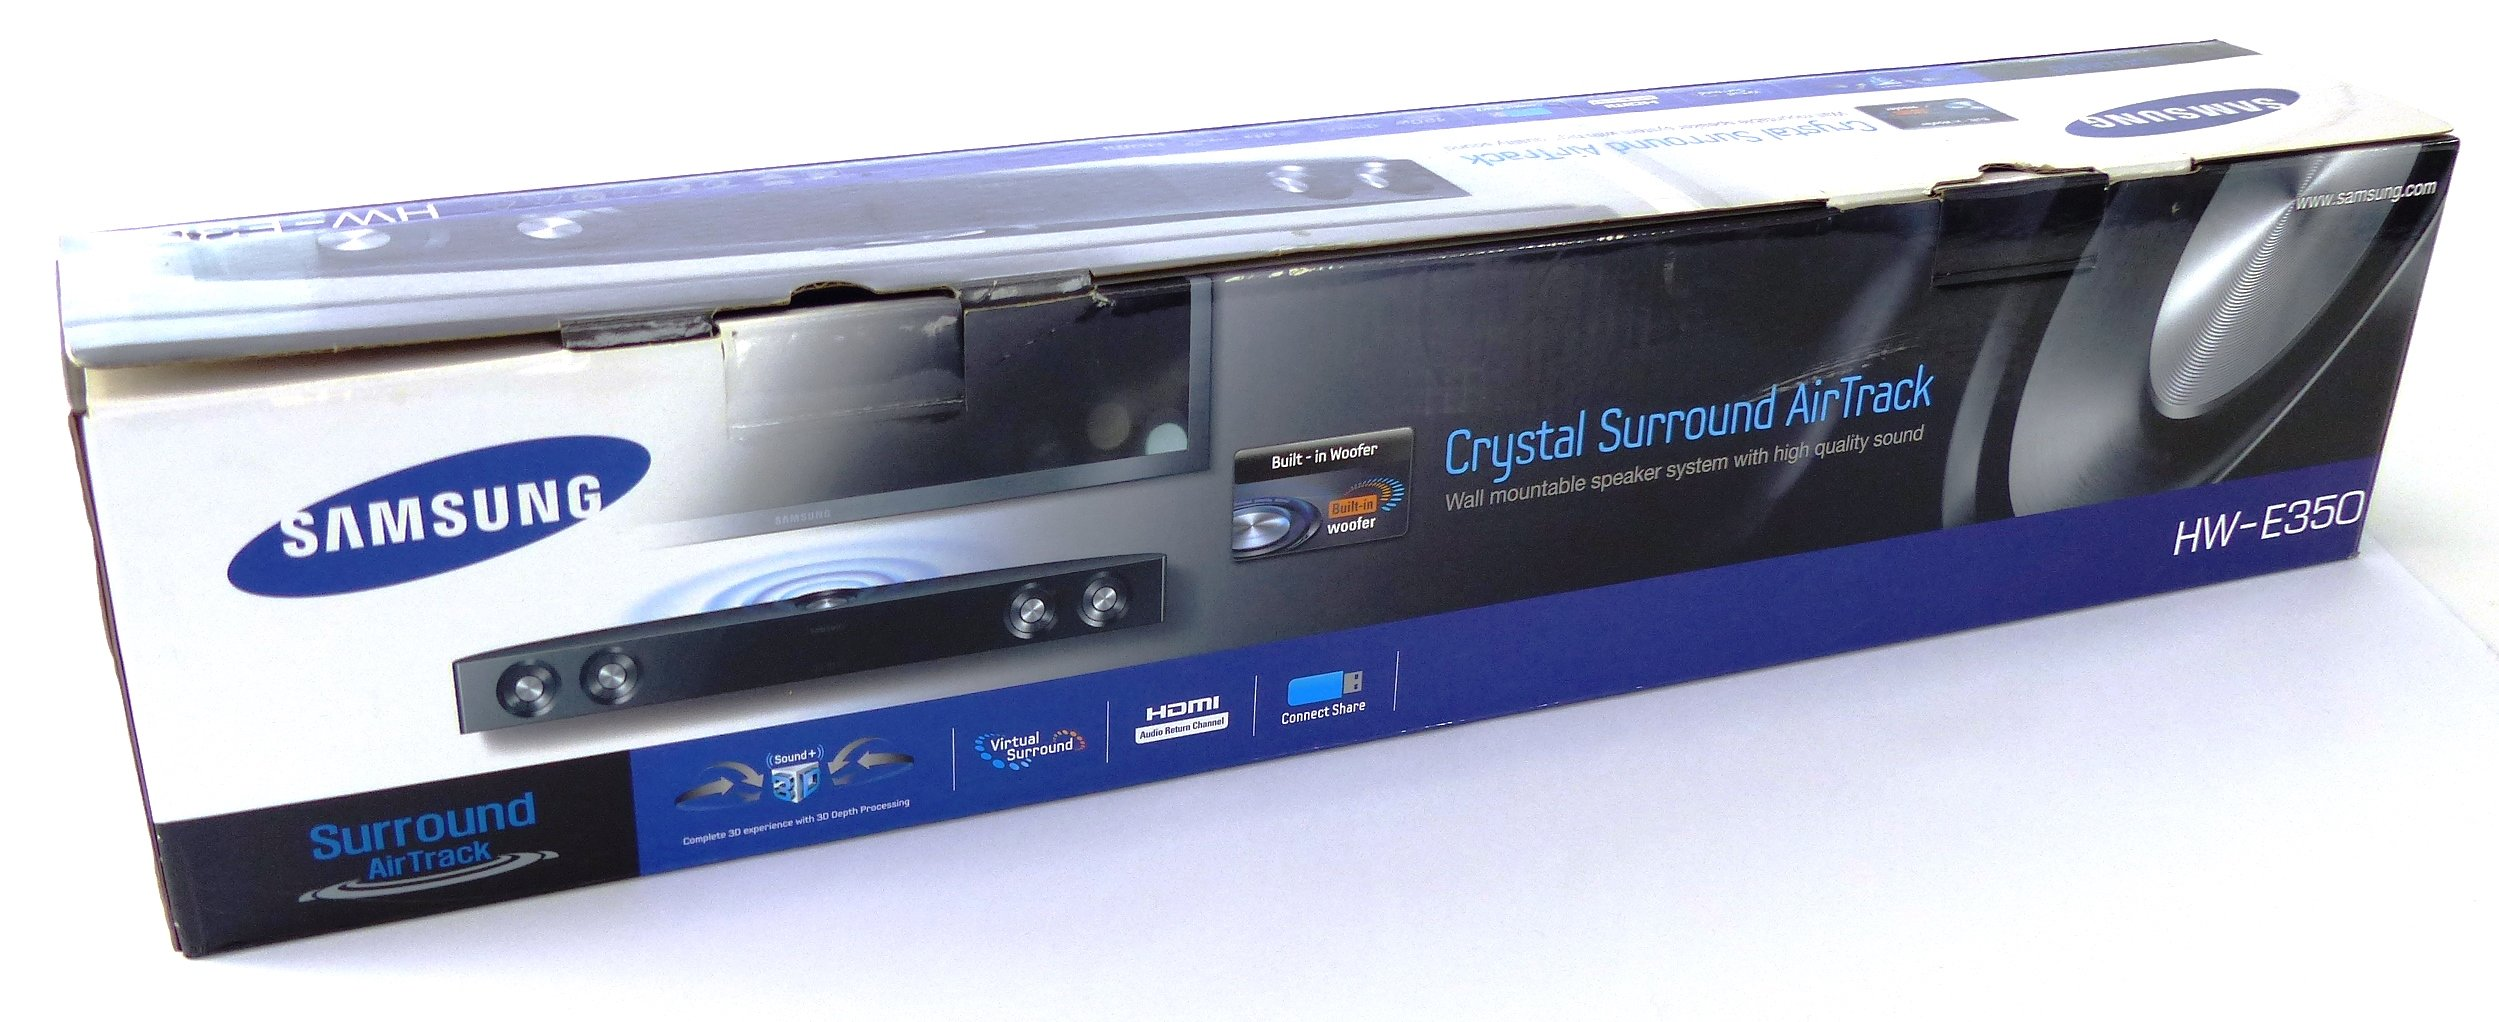 how to connect samsung crystal surround air track